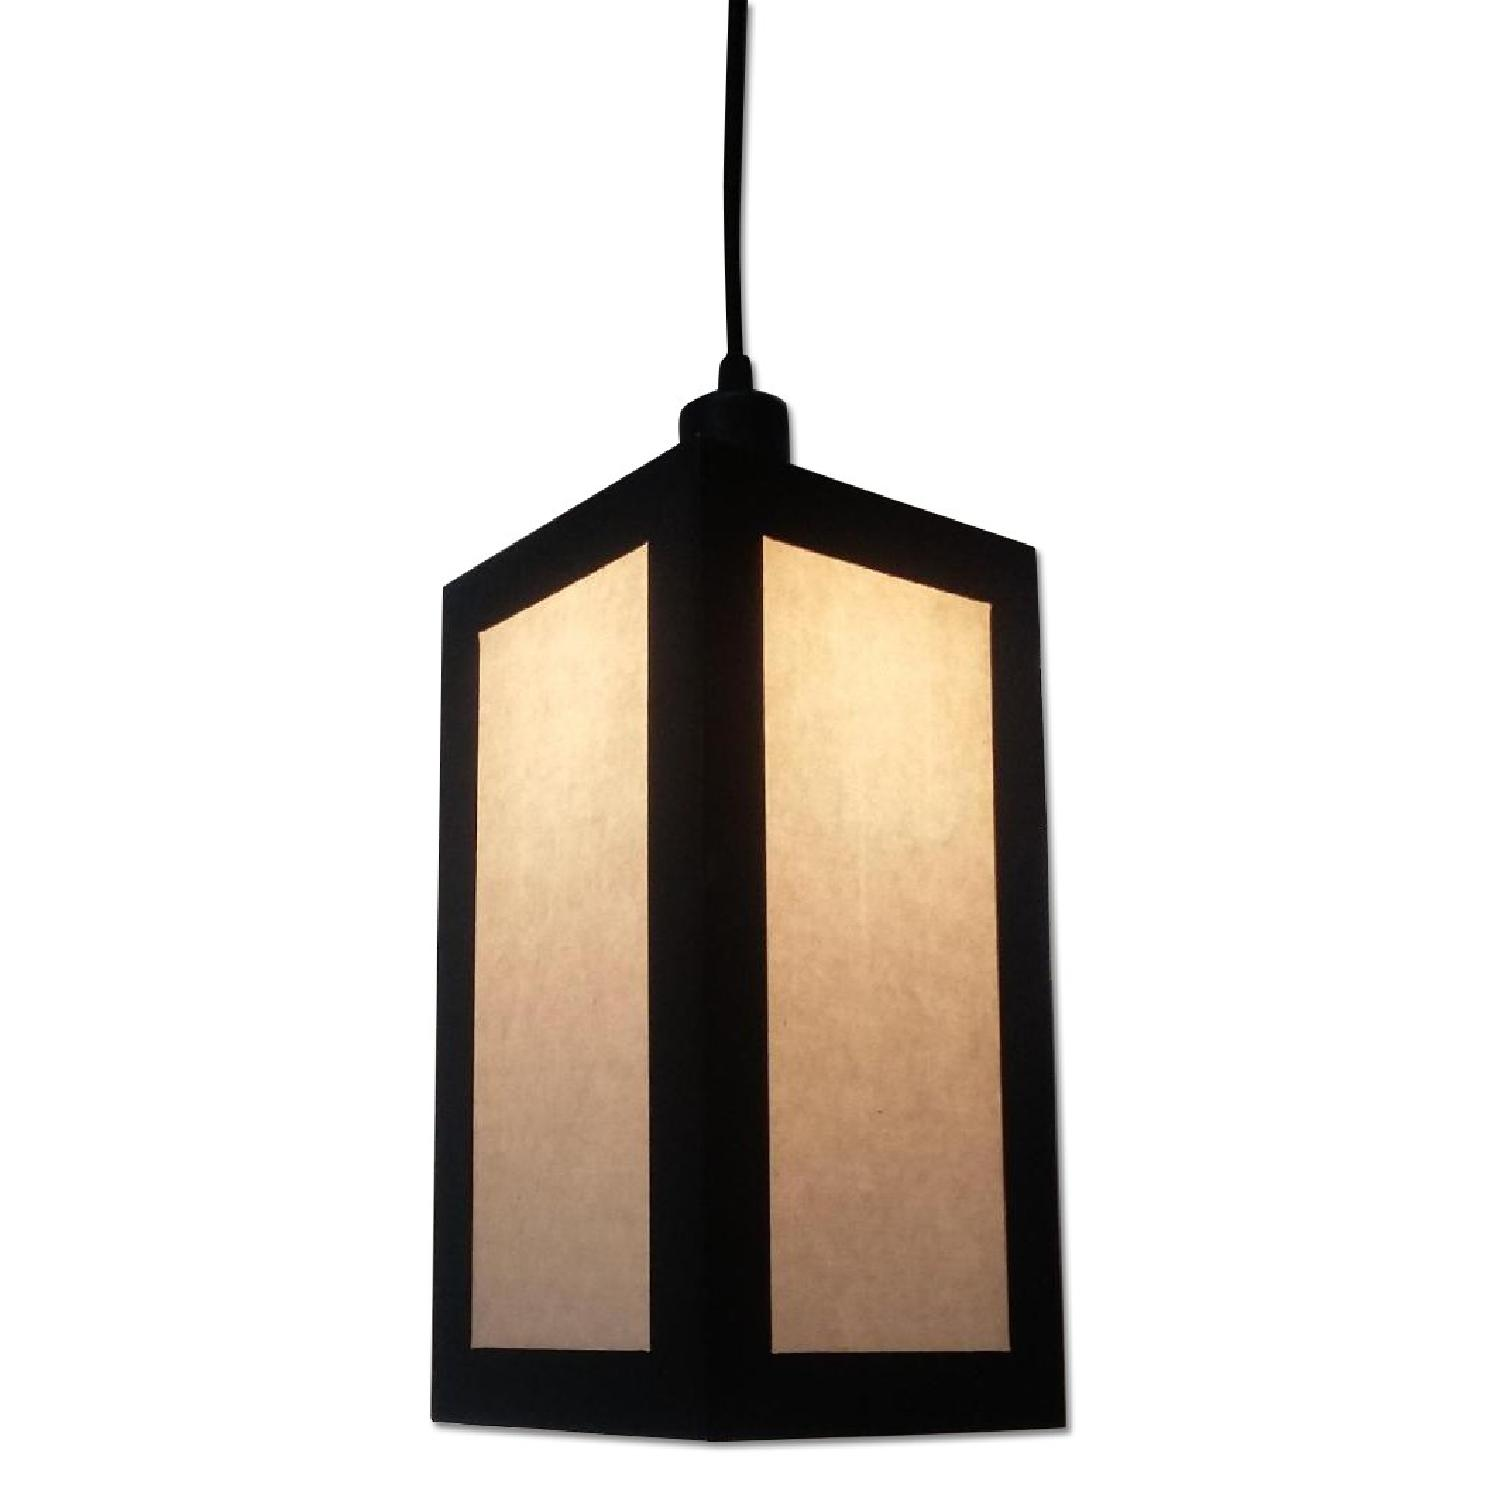 Oblik Studio Kamakura Pendant Light